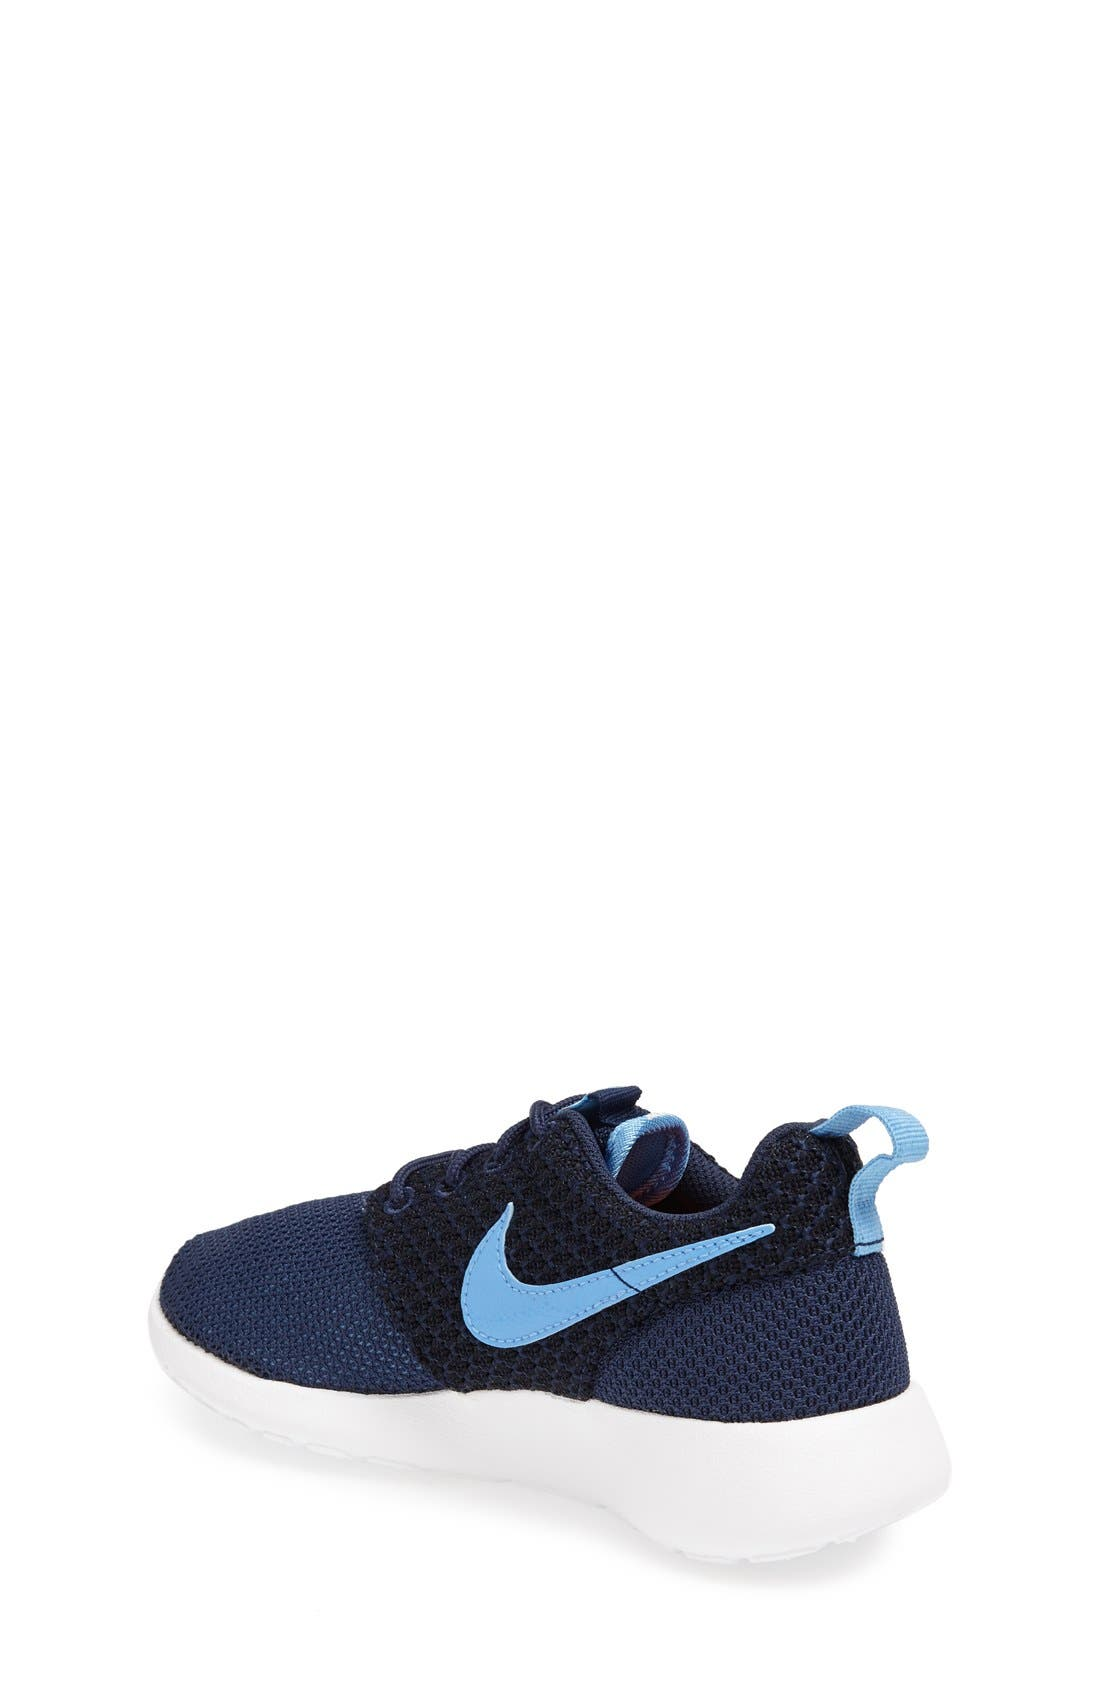 'Roshe Run' Sneaker,                             Alternate thumbnail 131, color,